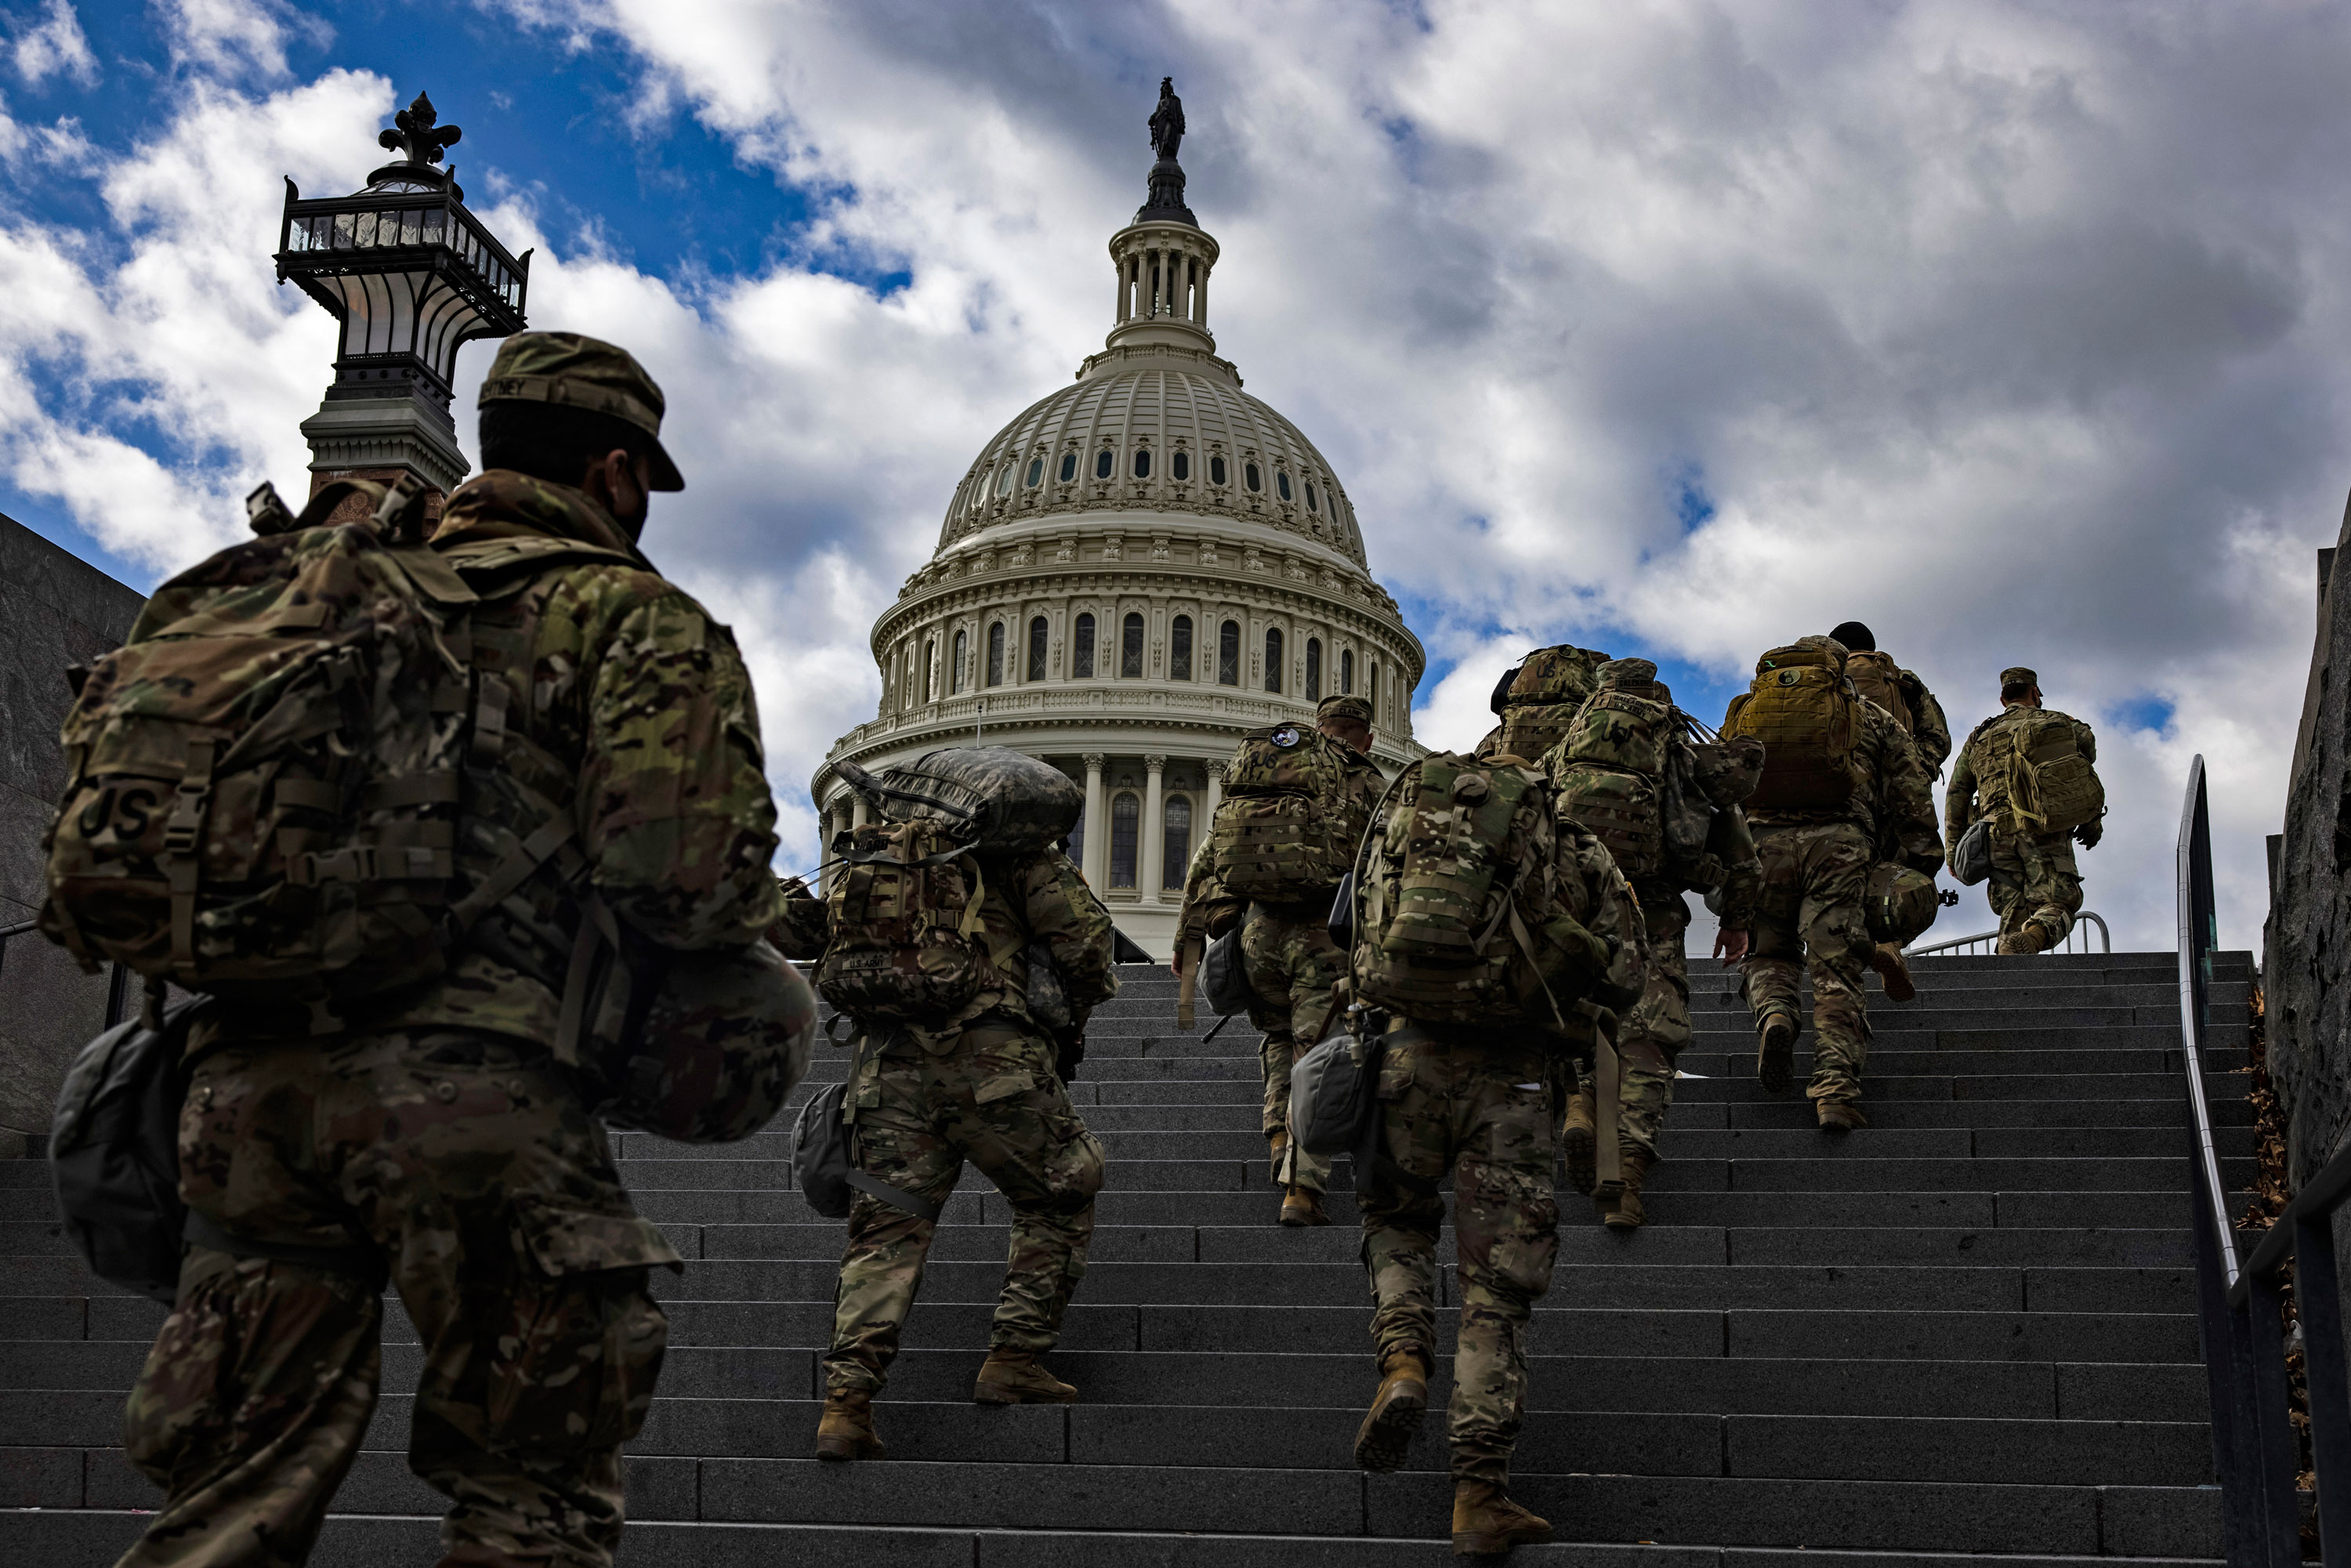 Pentagon chief says 'no intelligence indicating an insider threat' to inauguration as FBI vets National Guard